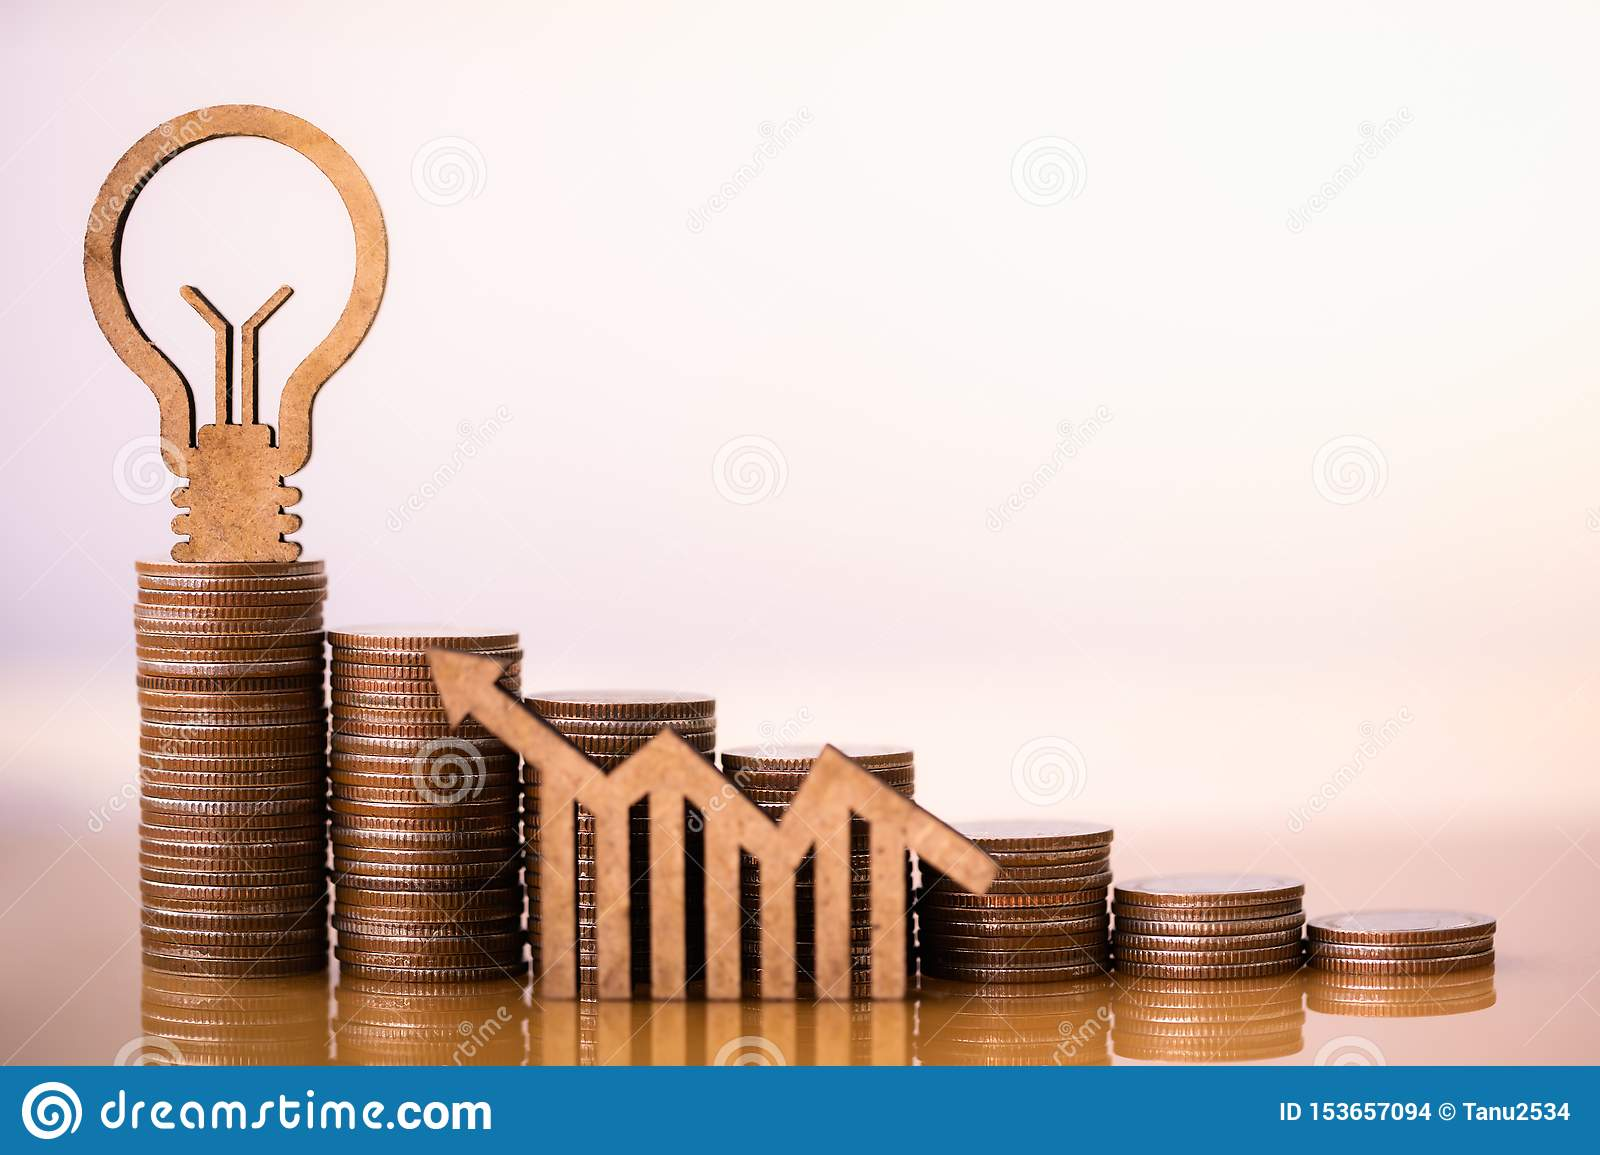 Light bulb and stack of coins in concept of savings and money growing or energy save.